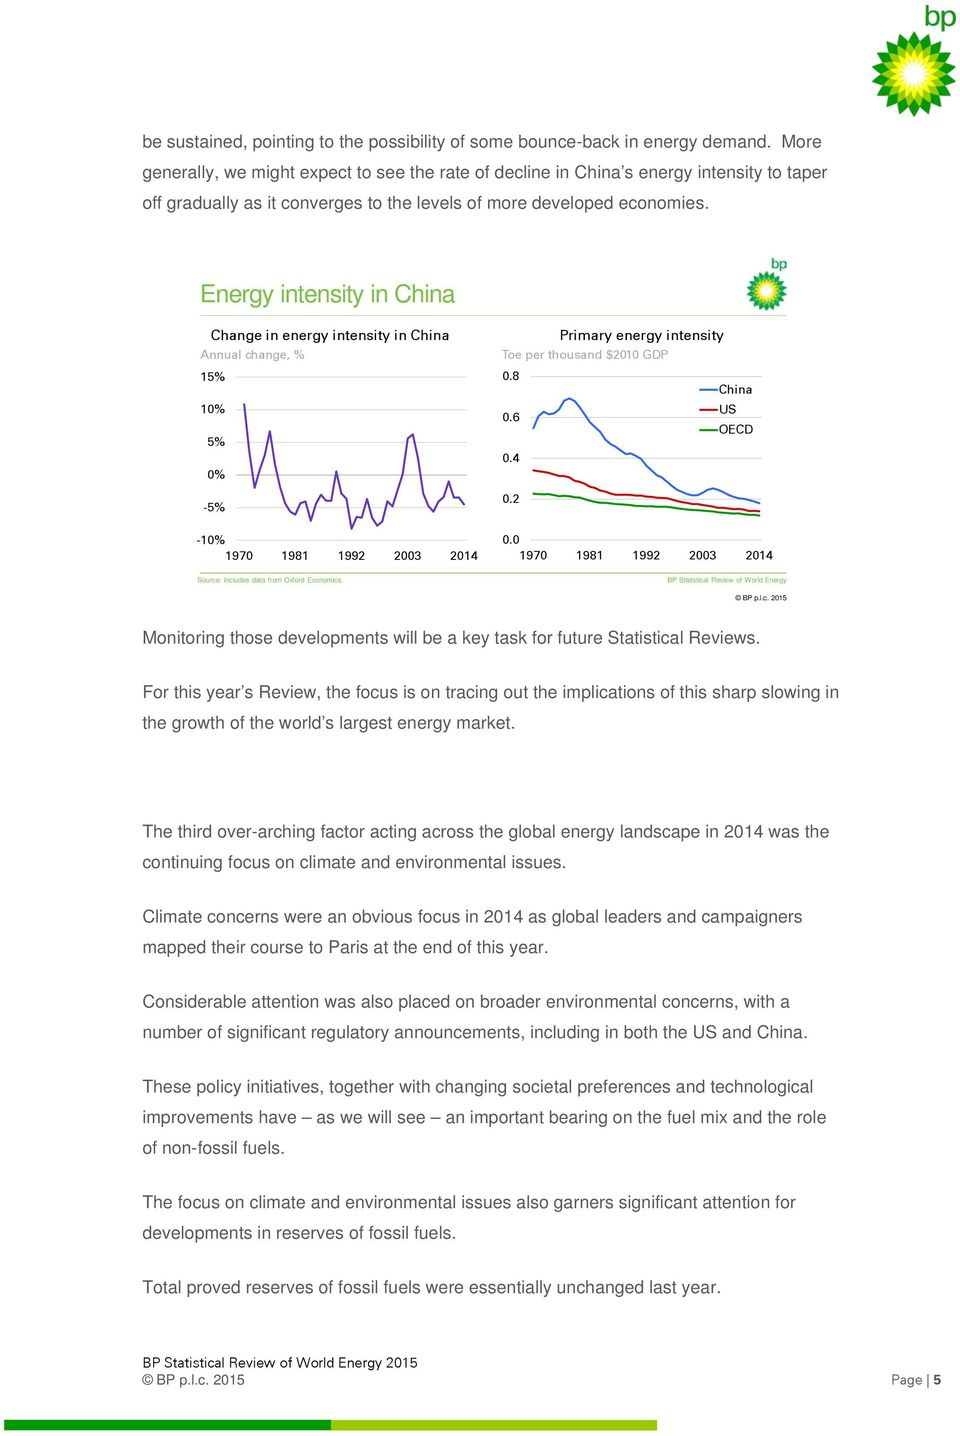 Energy intensity in China Change in energy intensity in China 15% 10% 5% 0% -5% -10% 1970 1981 1992 2003 2014 Primary energy intensity Toe per thousand $2010 GDP 0.8 China US 0.6 OECD 0.4 0.2 0.